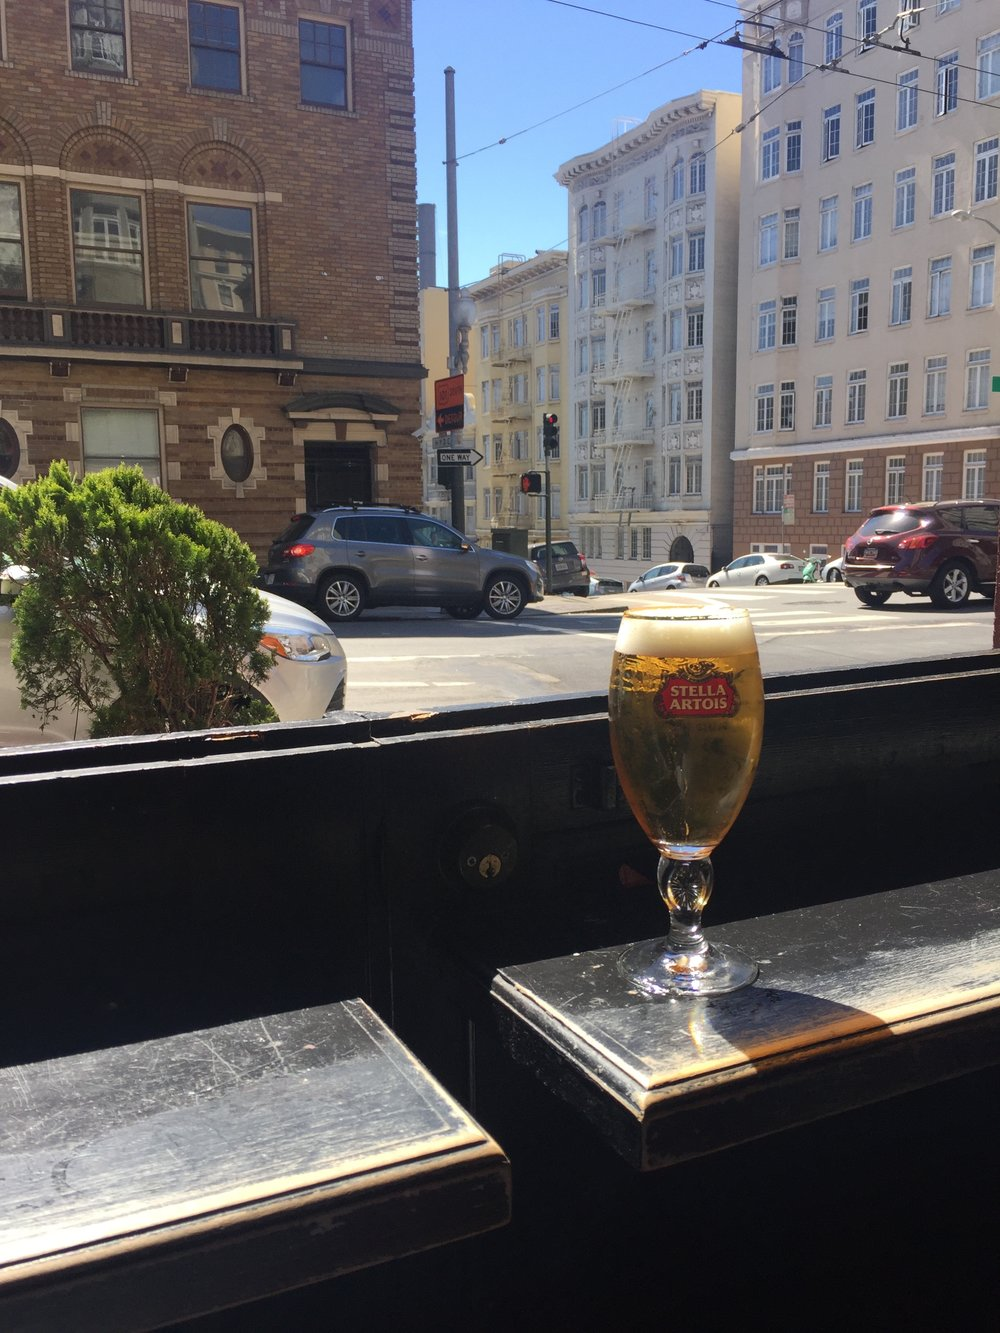 sanfrancisco,view,street,city,beer,stella,explore,adventure,buildings